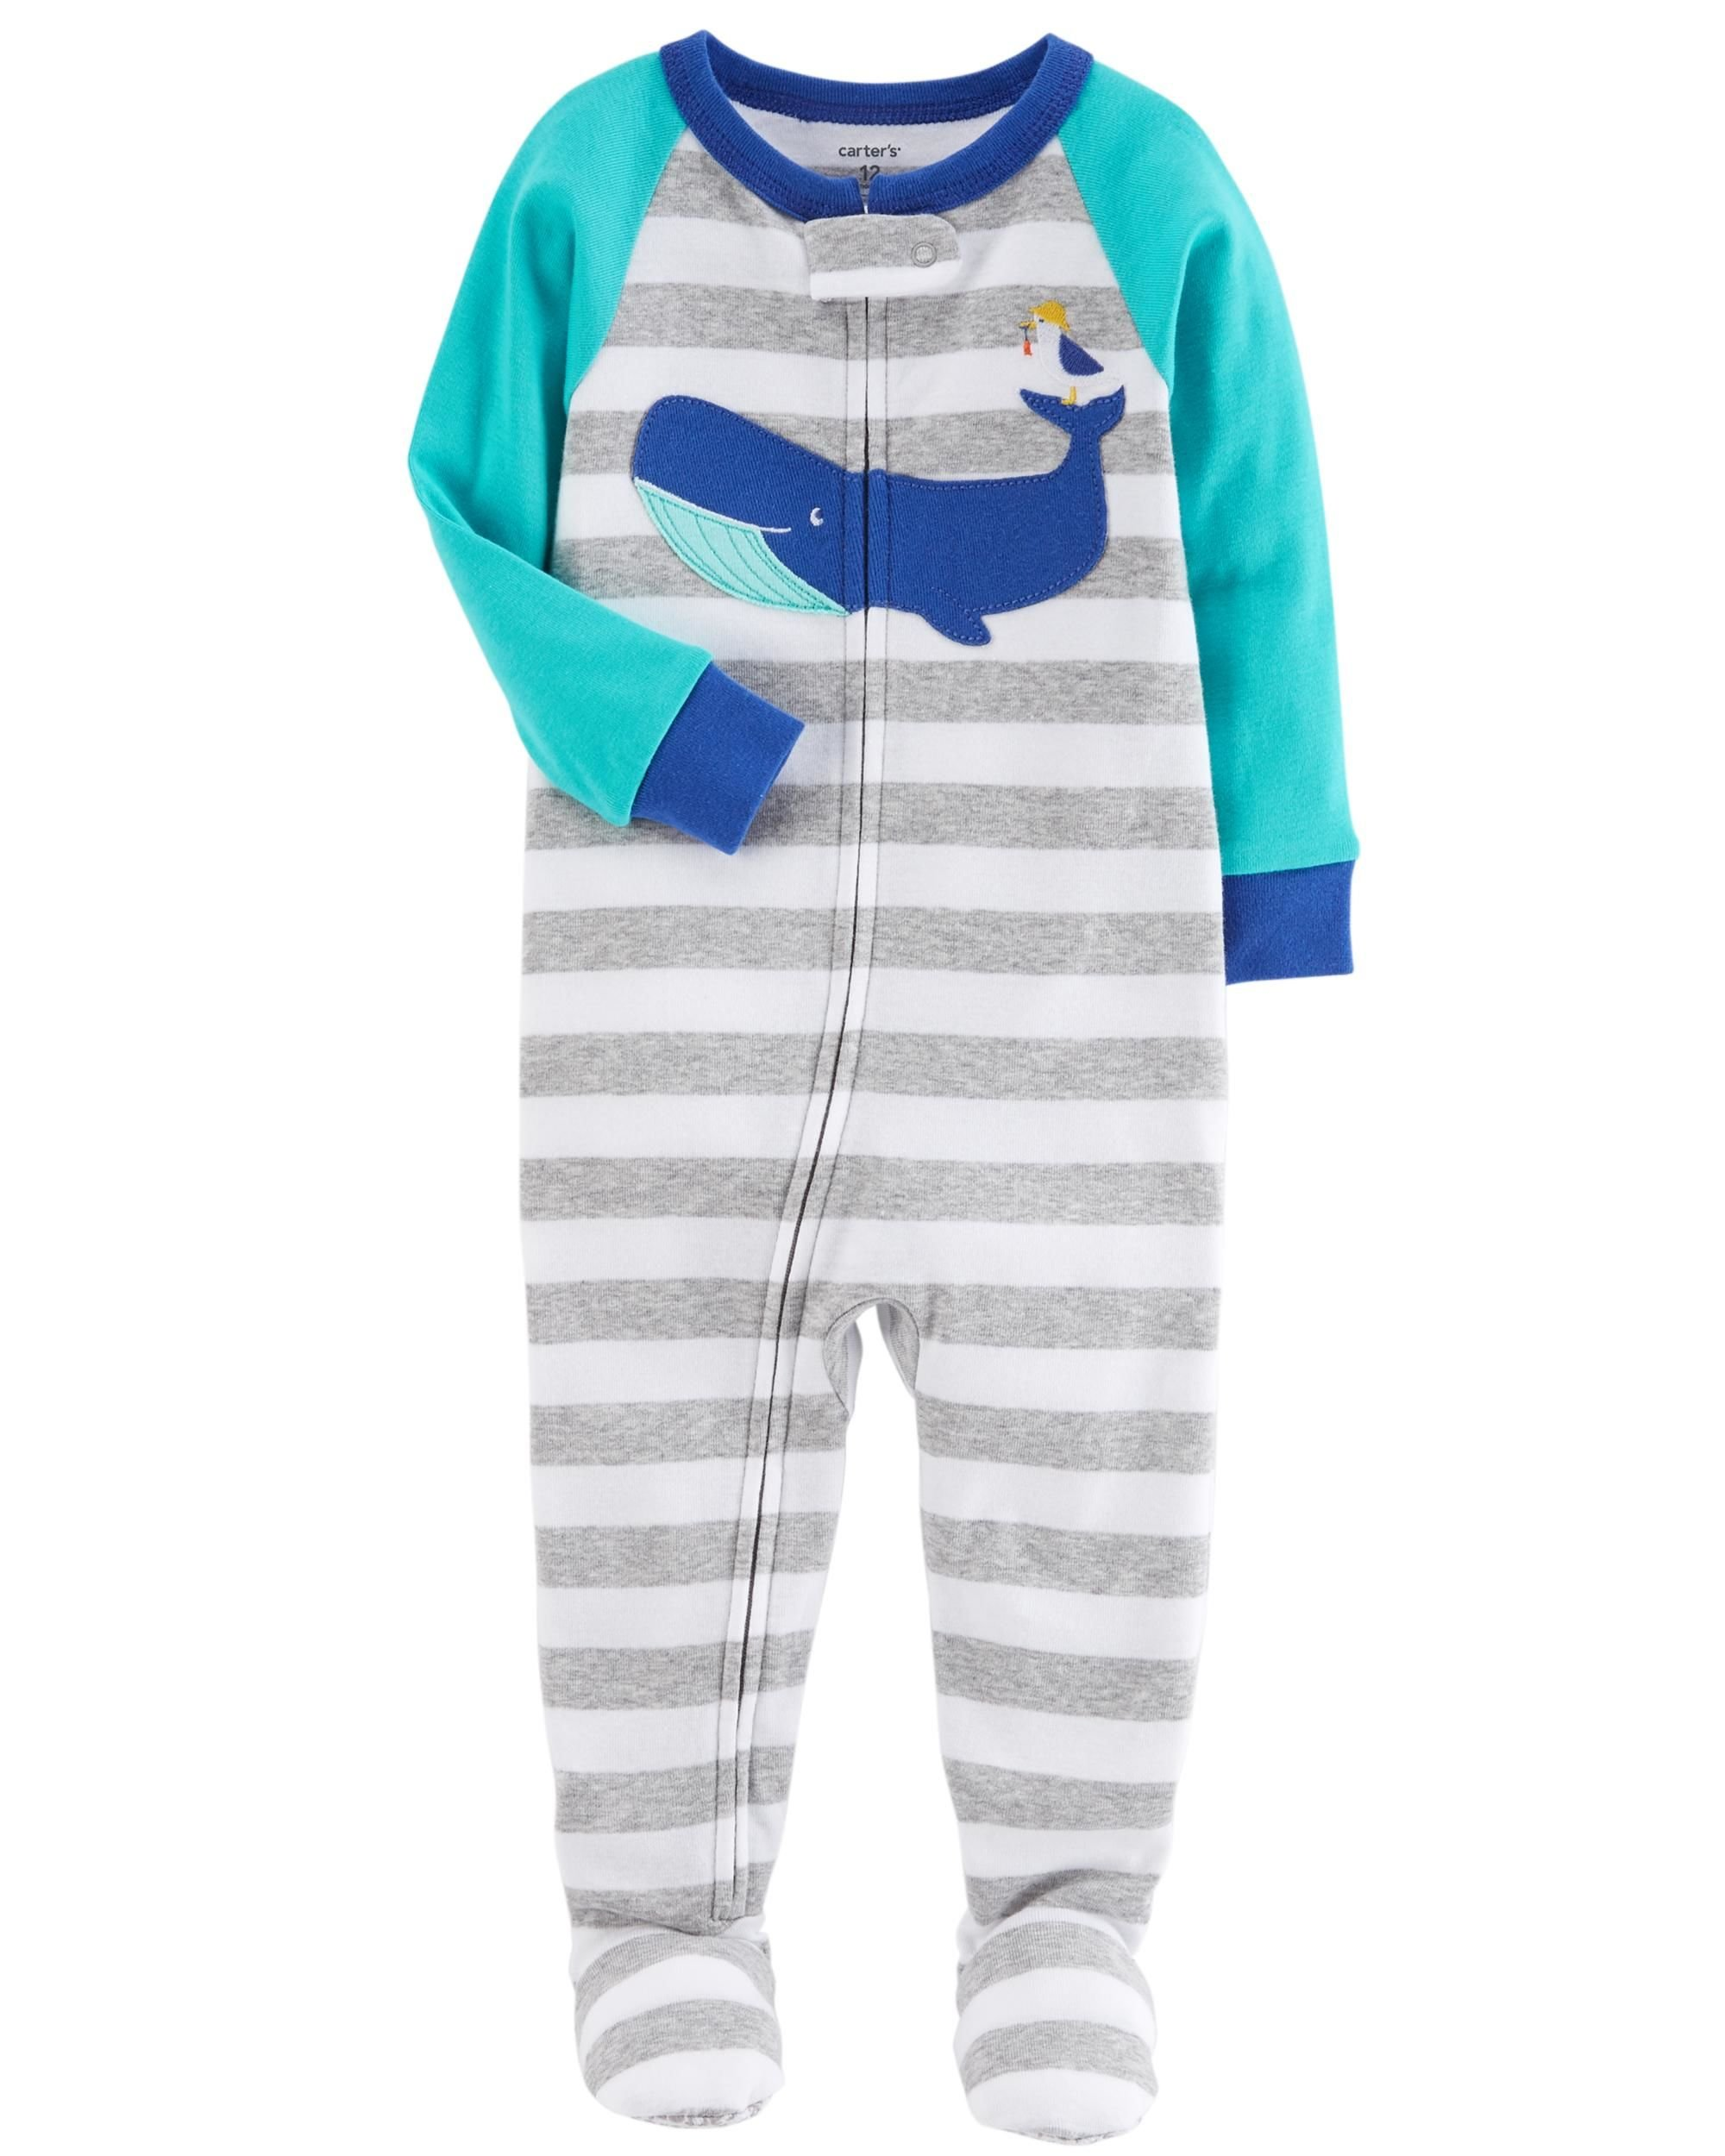 Carter's Baby Boys' One Piece Whale Snug Fit Cotton Pajamas 12 Months